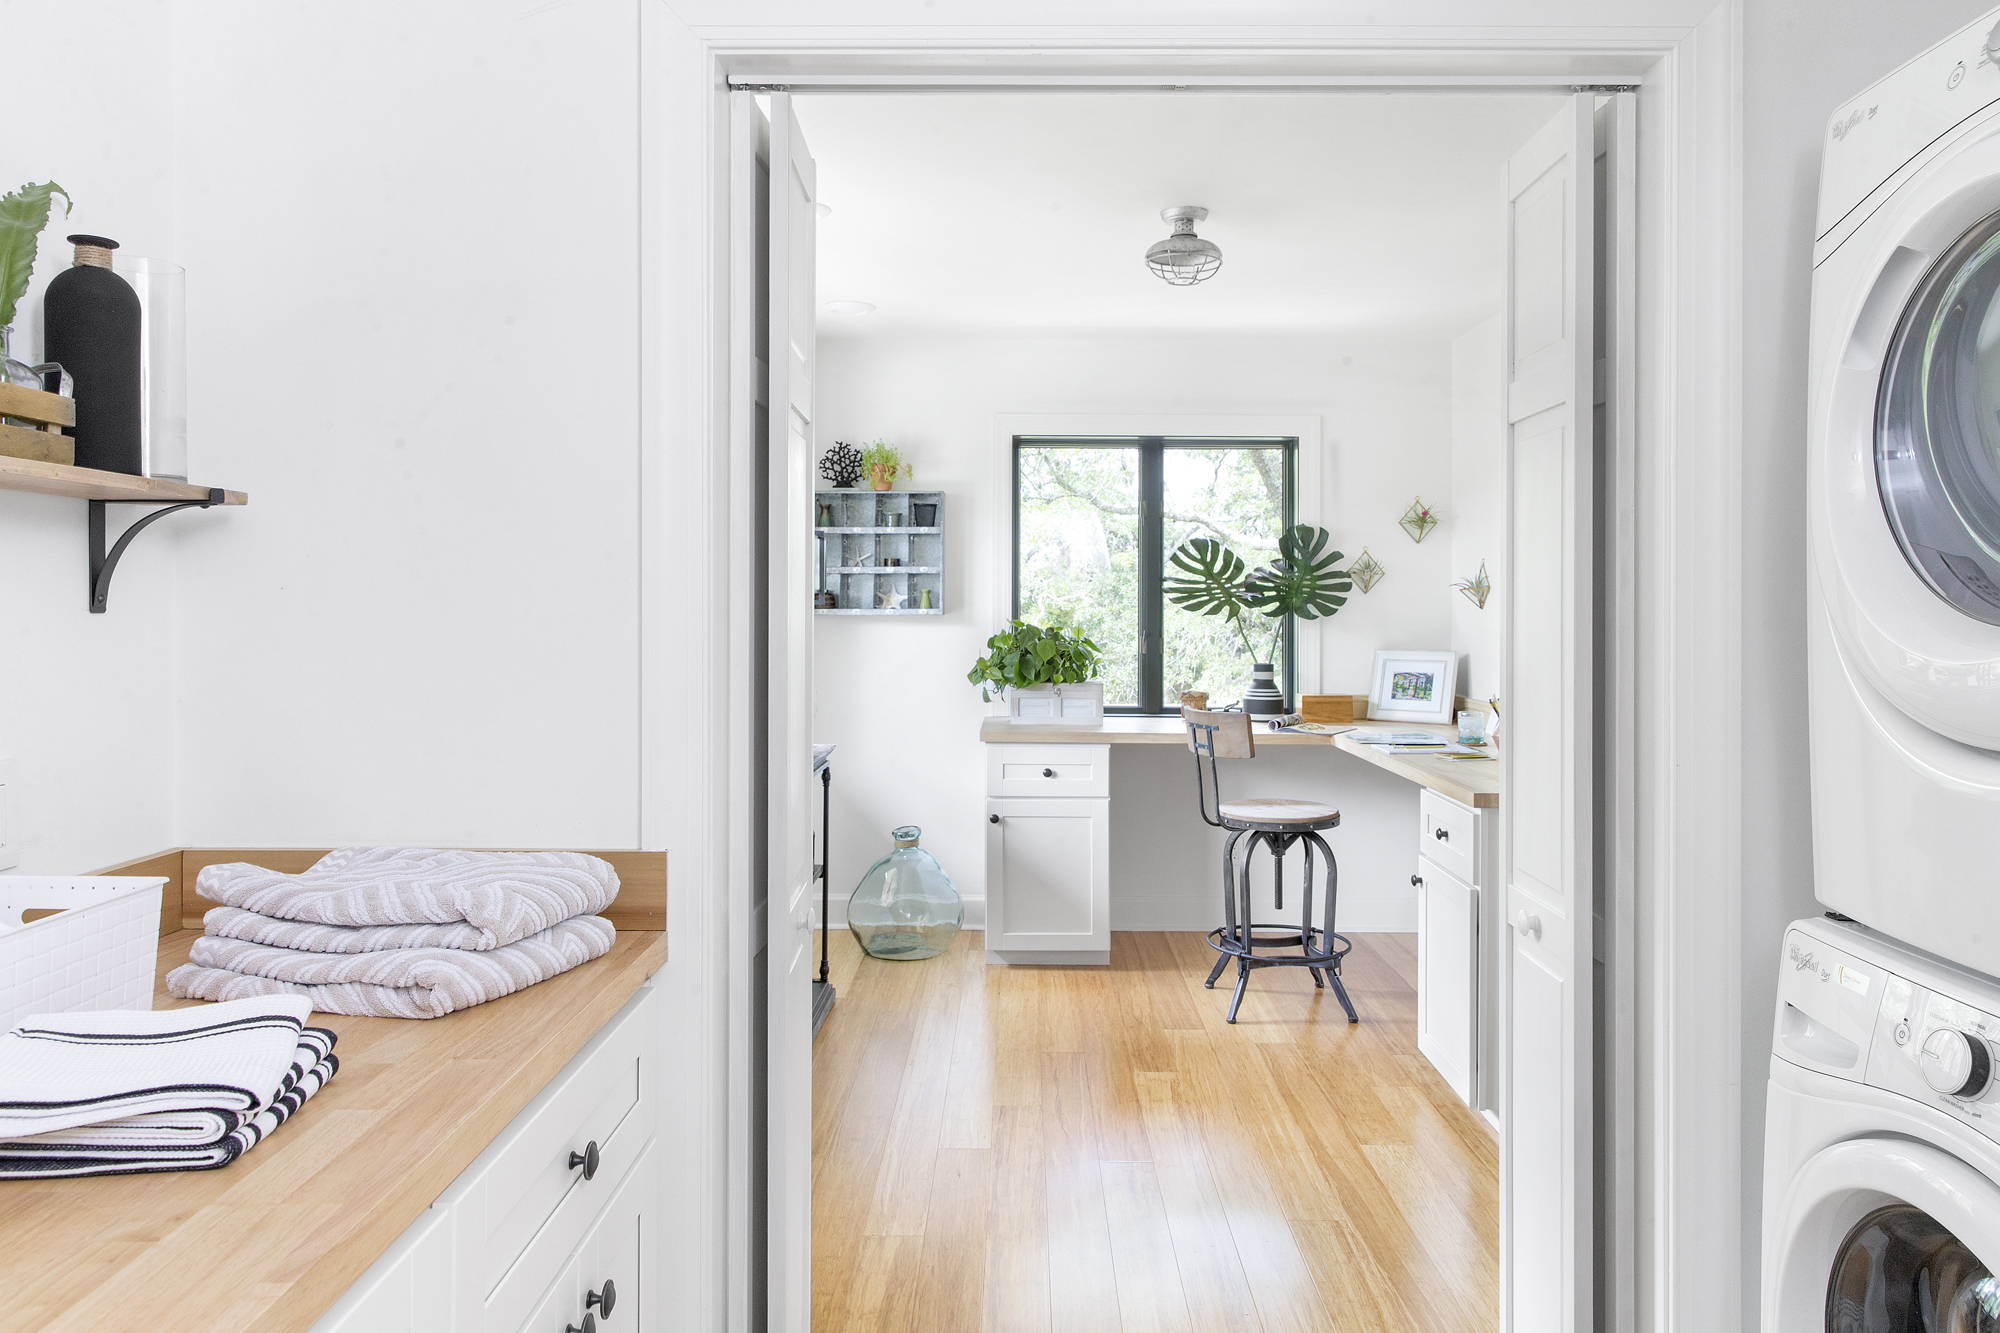 Conveniently located just off the office, the laundry room re-creates the breezy openness found throughout the home by using a simple palette of white, gray and warm wood tones.